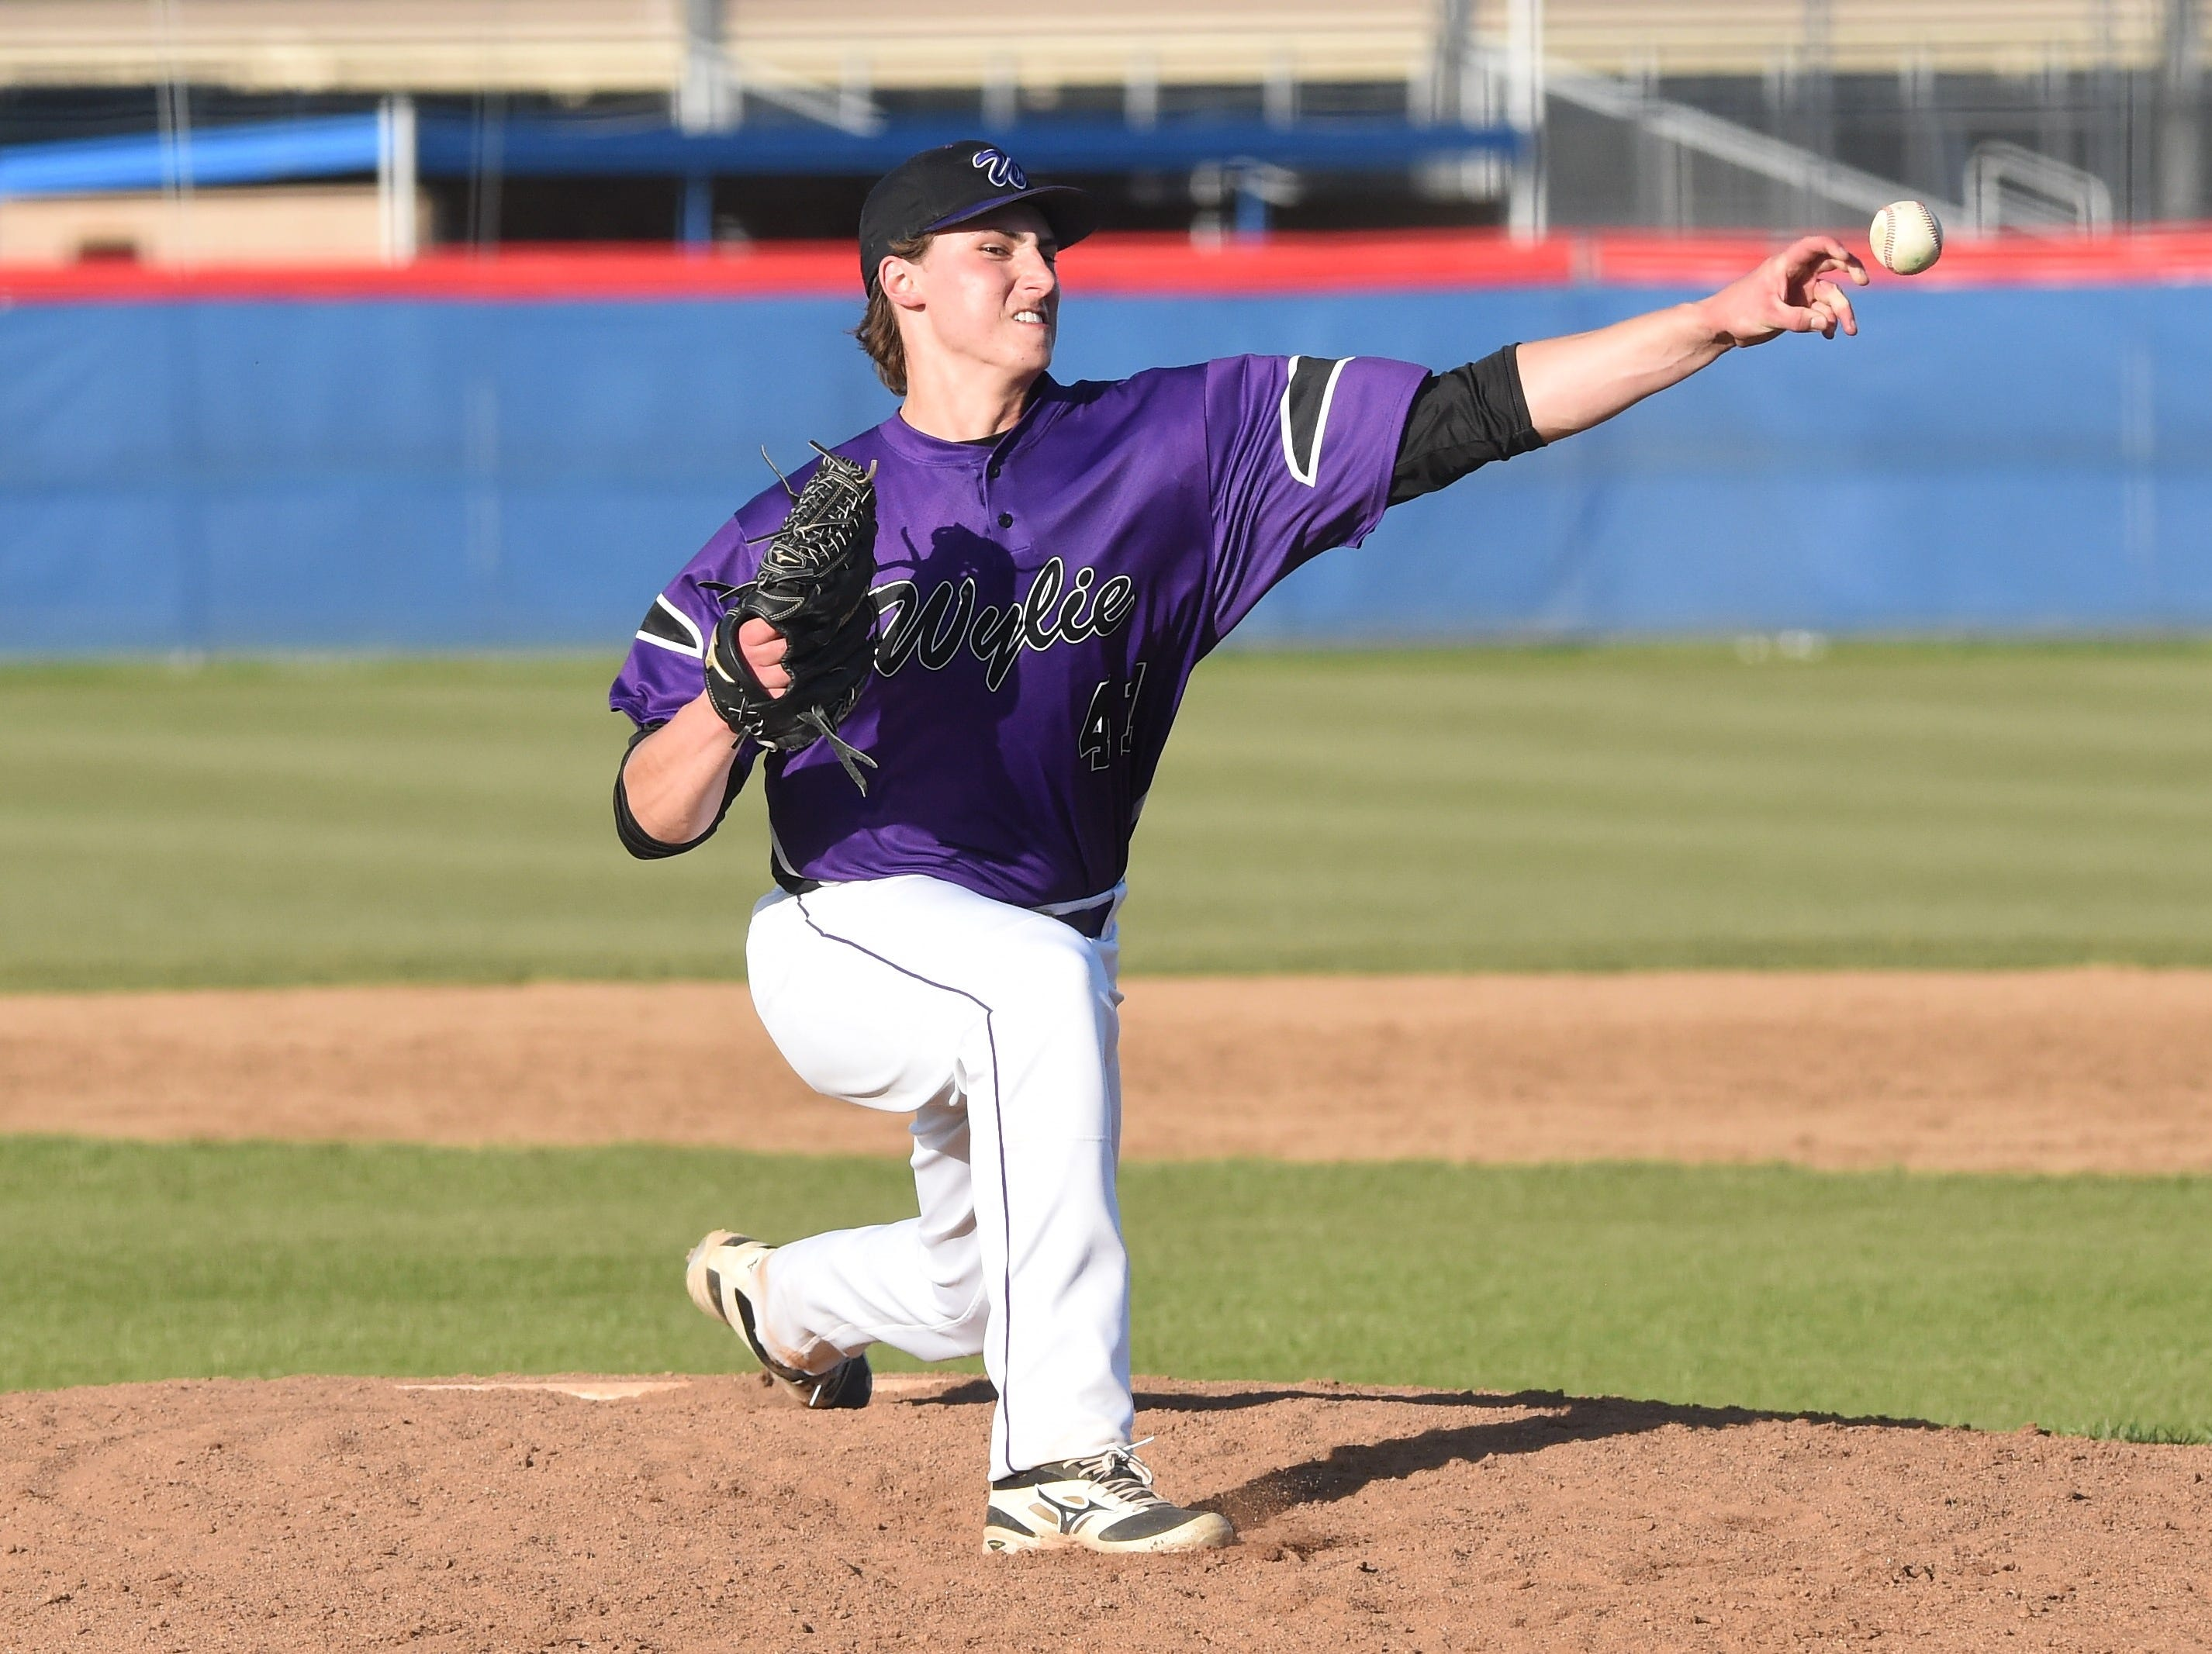 Wylie reliever Tyler Martin (41) lets go of a pitch against Cooper at Cougar Field on Tuesday, April 9, 2019. Martin worked three innings of relief in the Bulldogs 11-5 win.